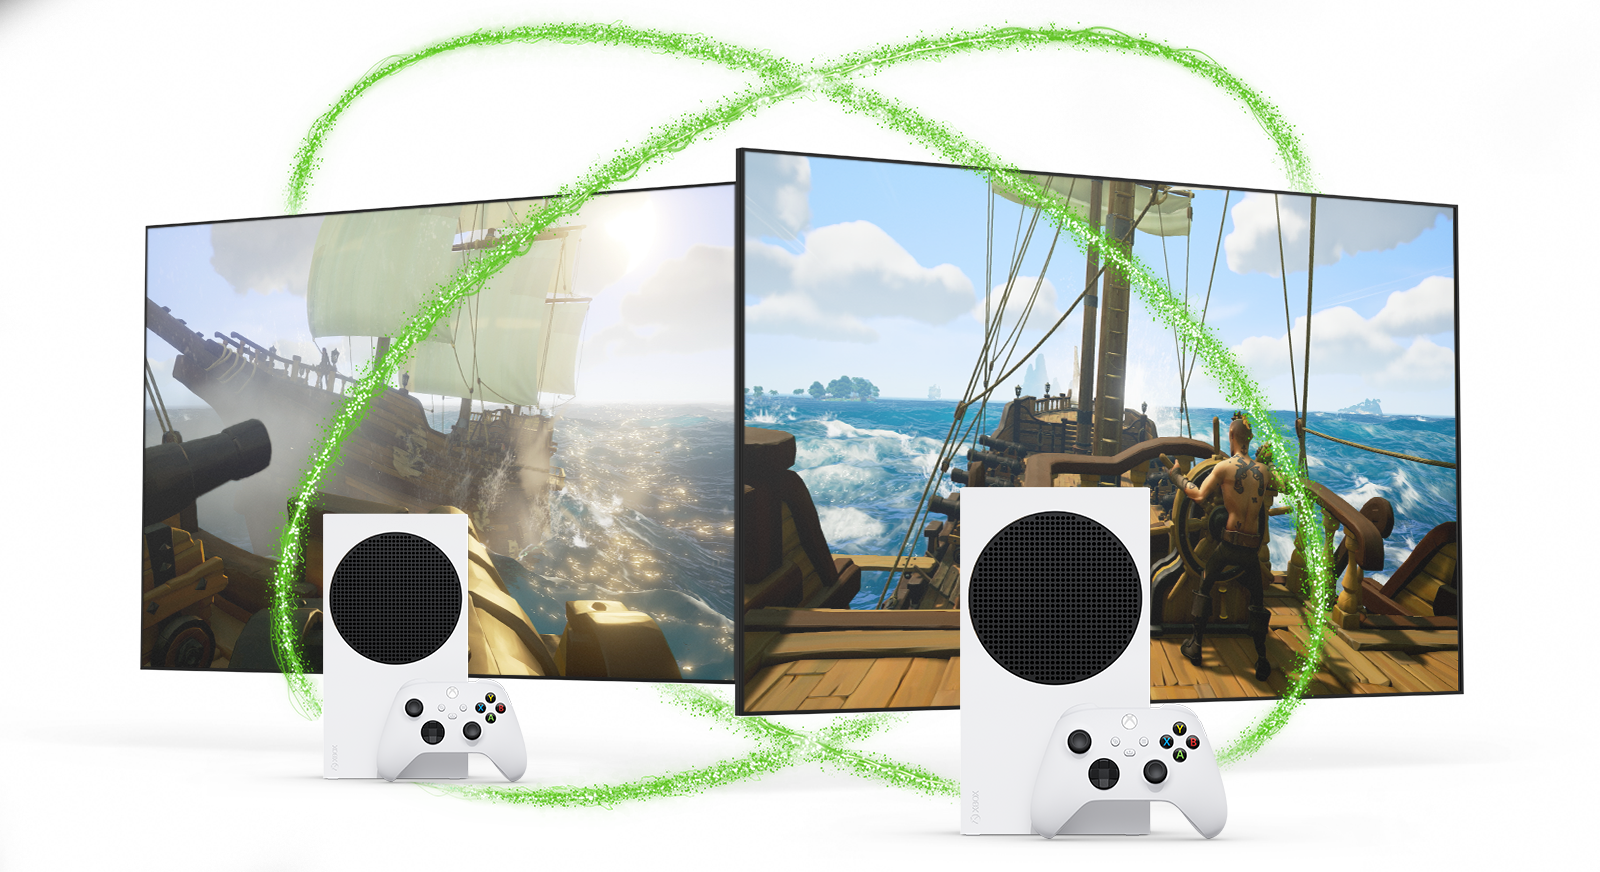 Xbox Series S consoles pictured with two screens depicting Sea of Thieves gameplay